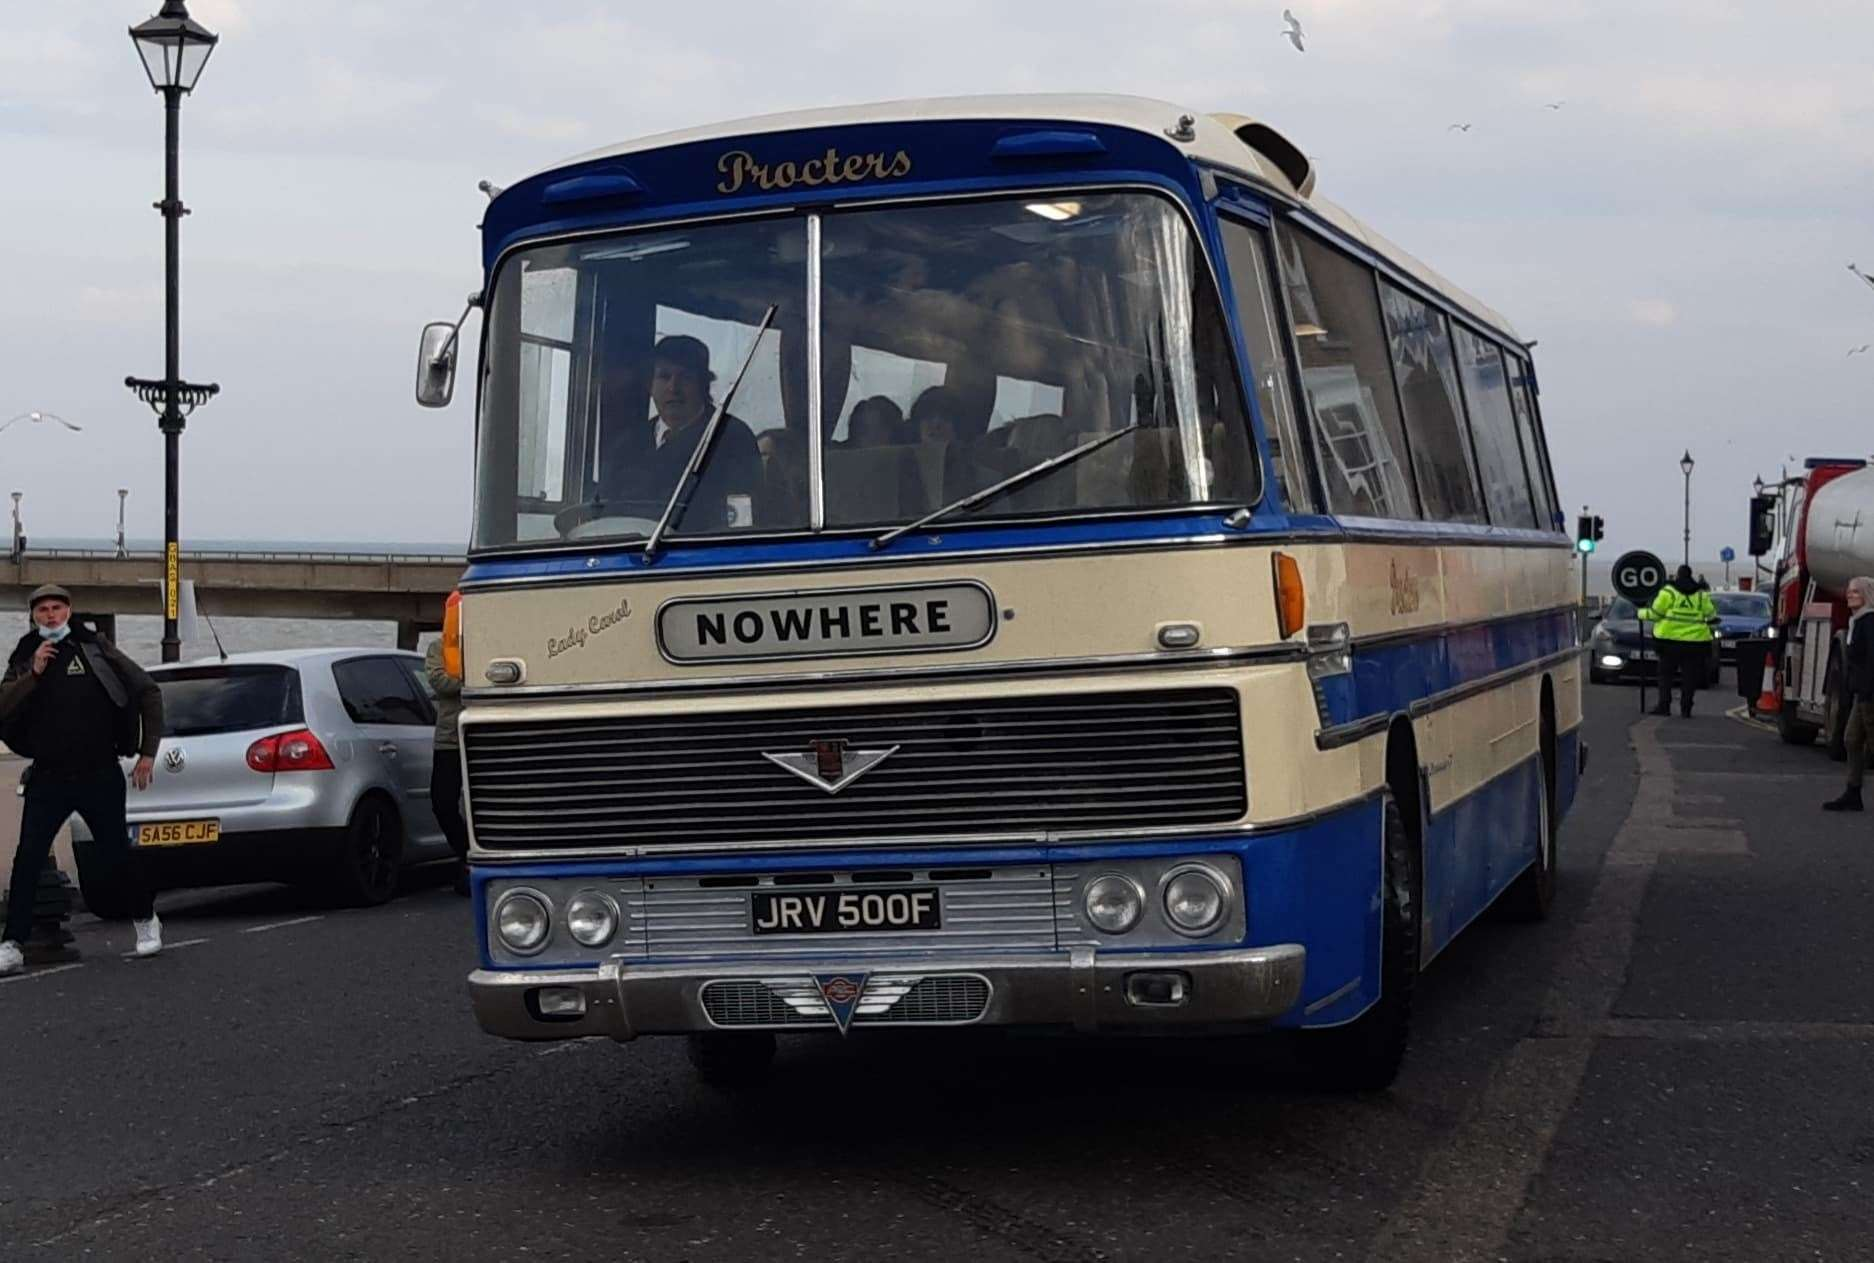 The Sex Pistols' 'Nowhere' tour bus in Deal